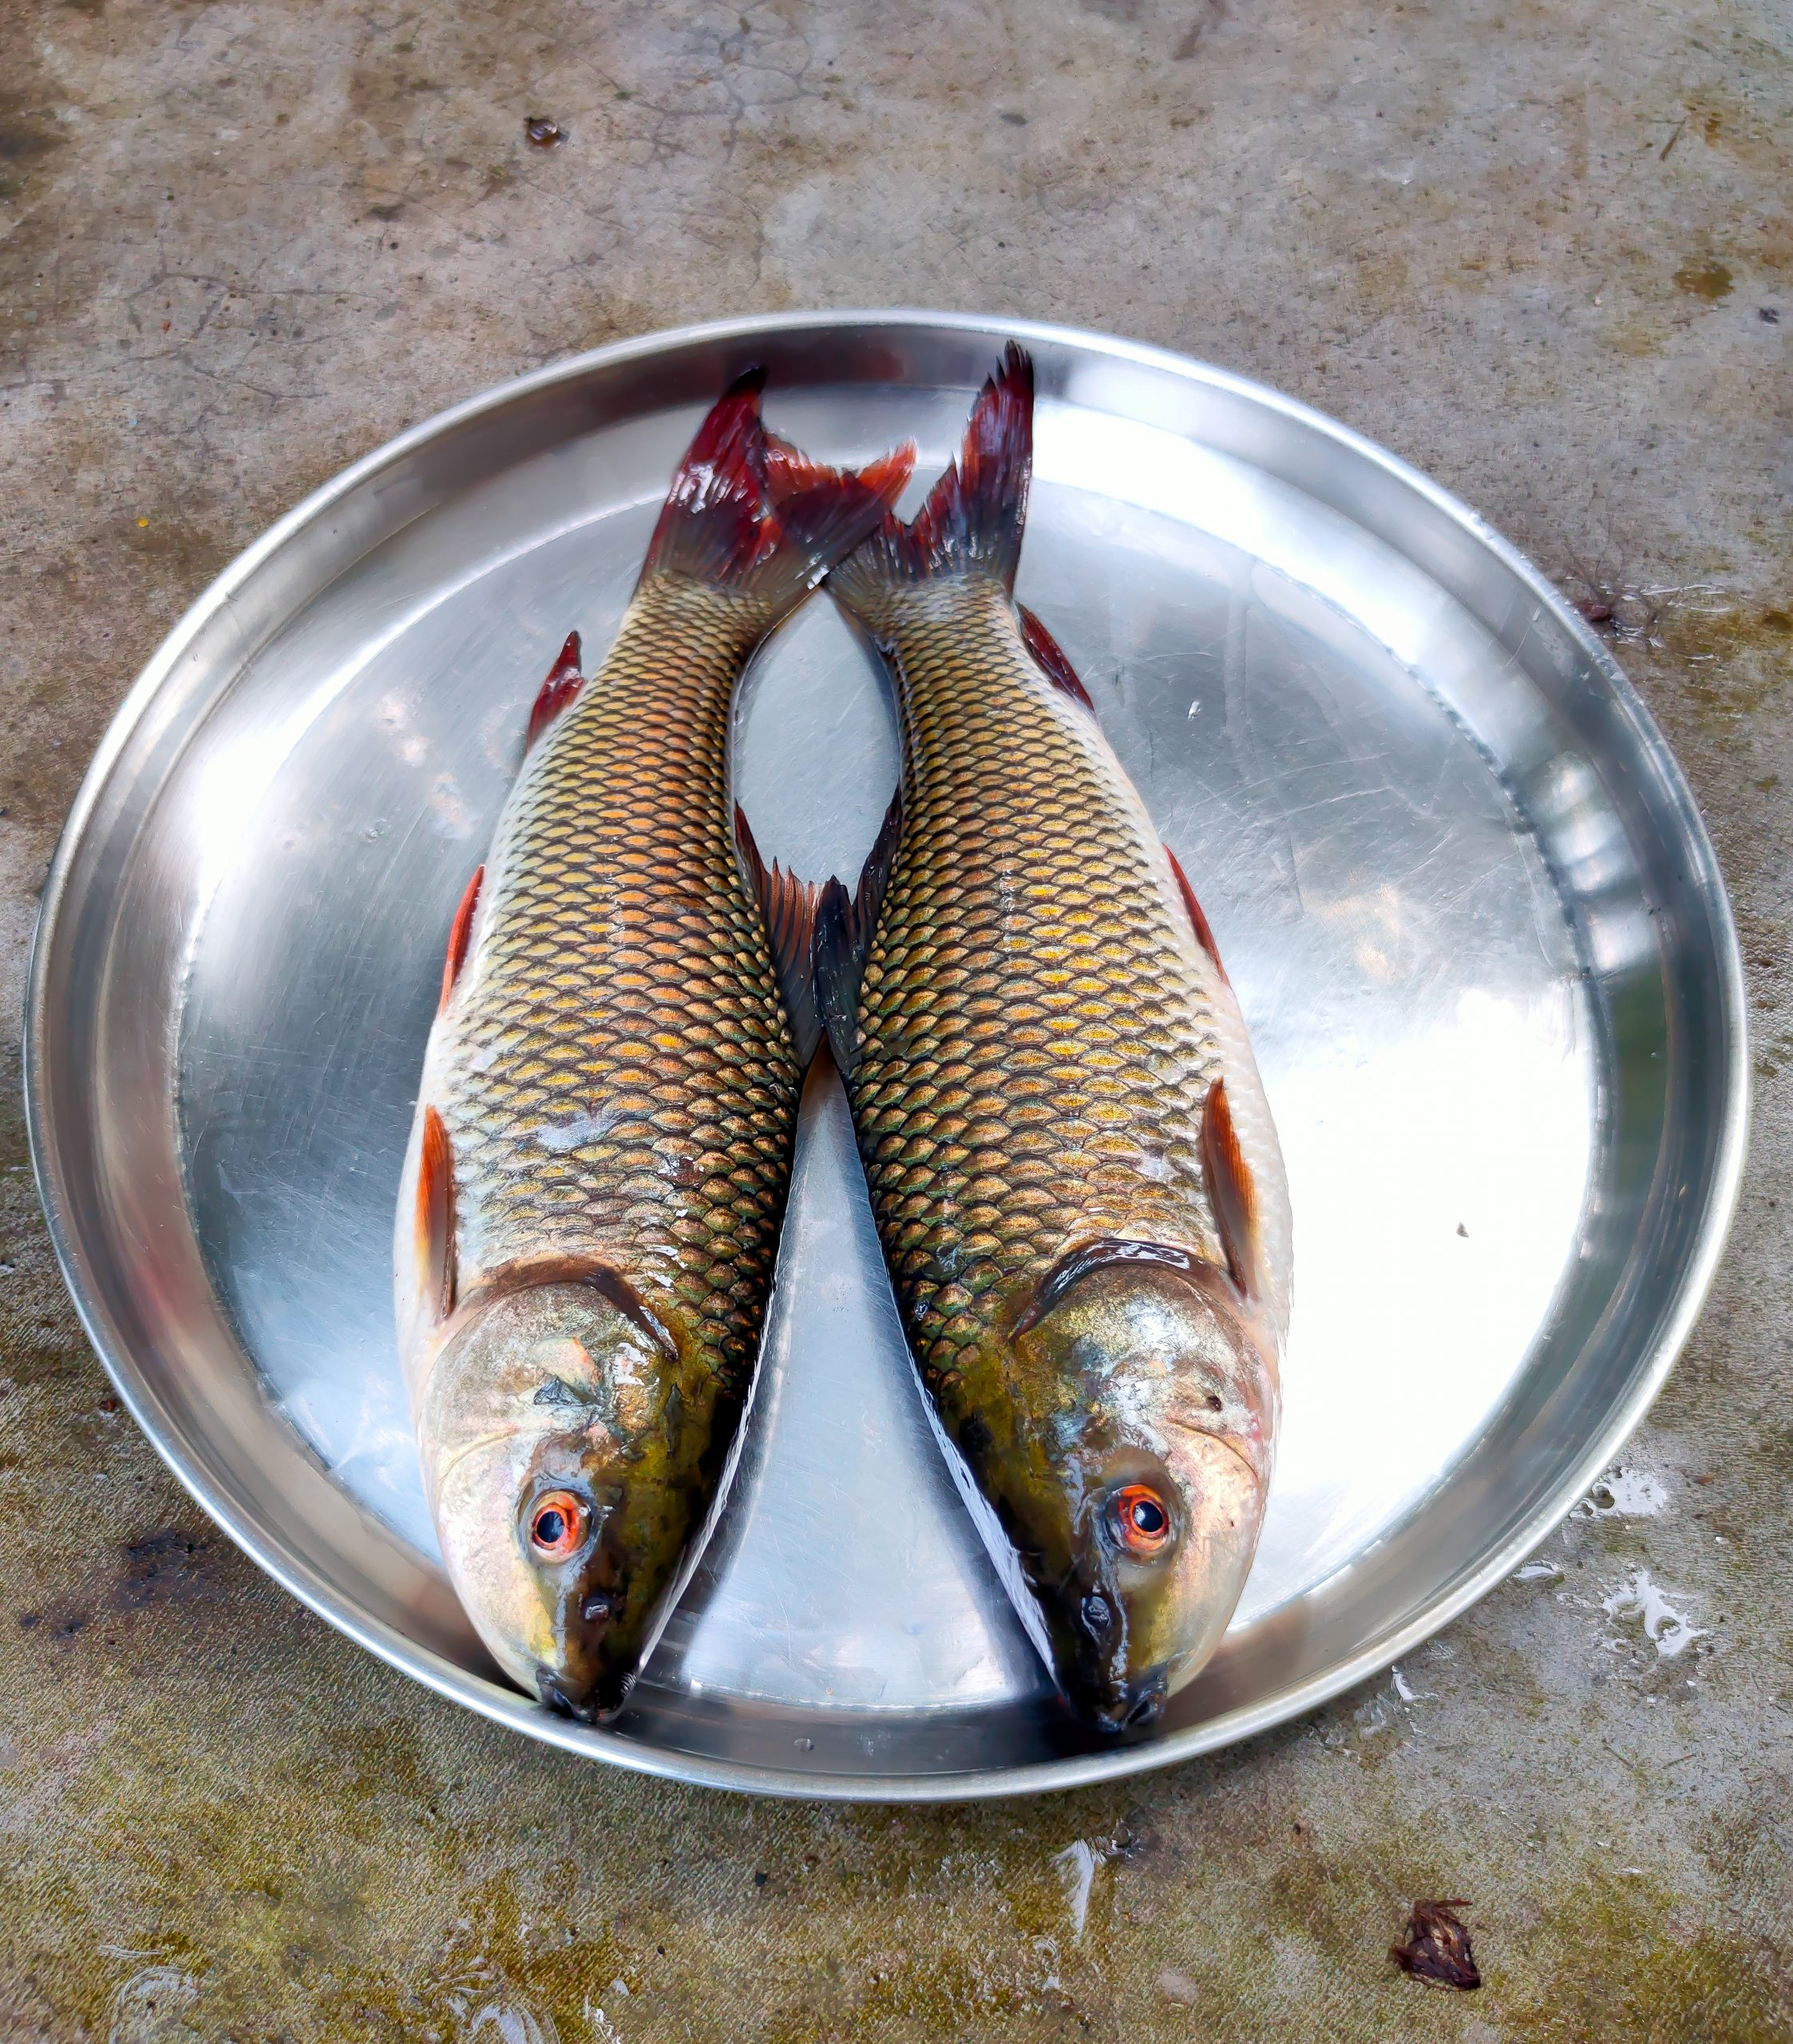 Fish in plate